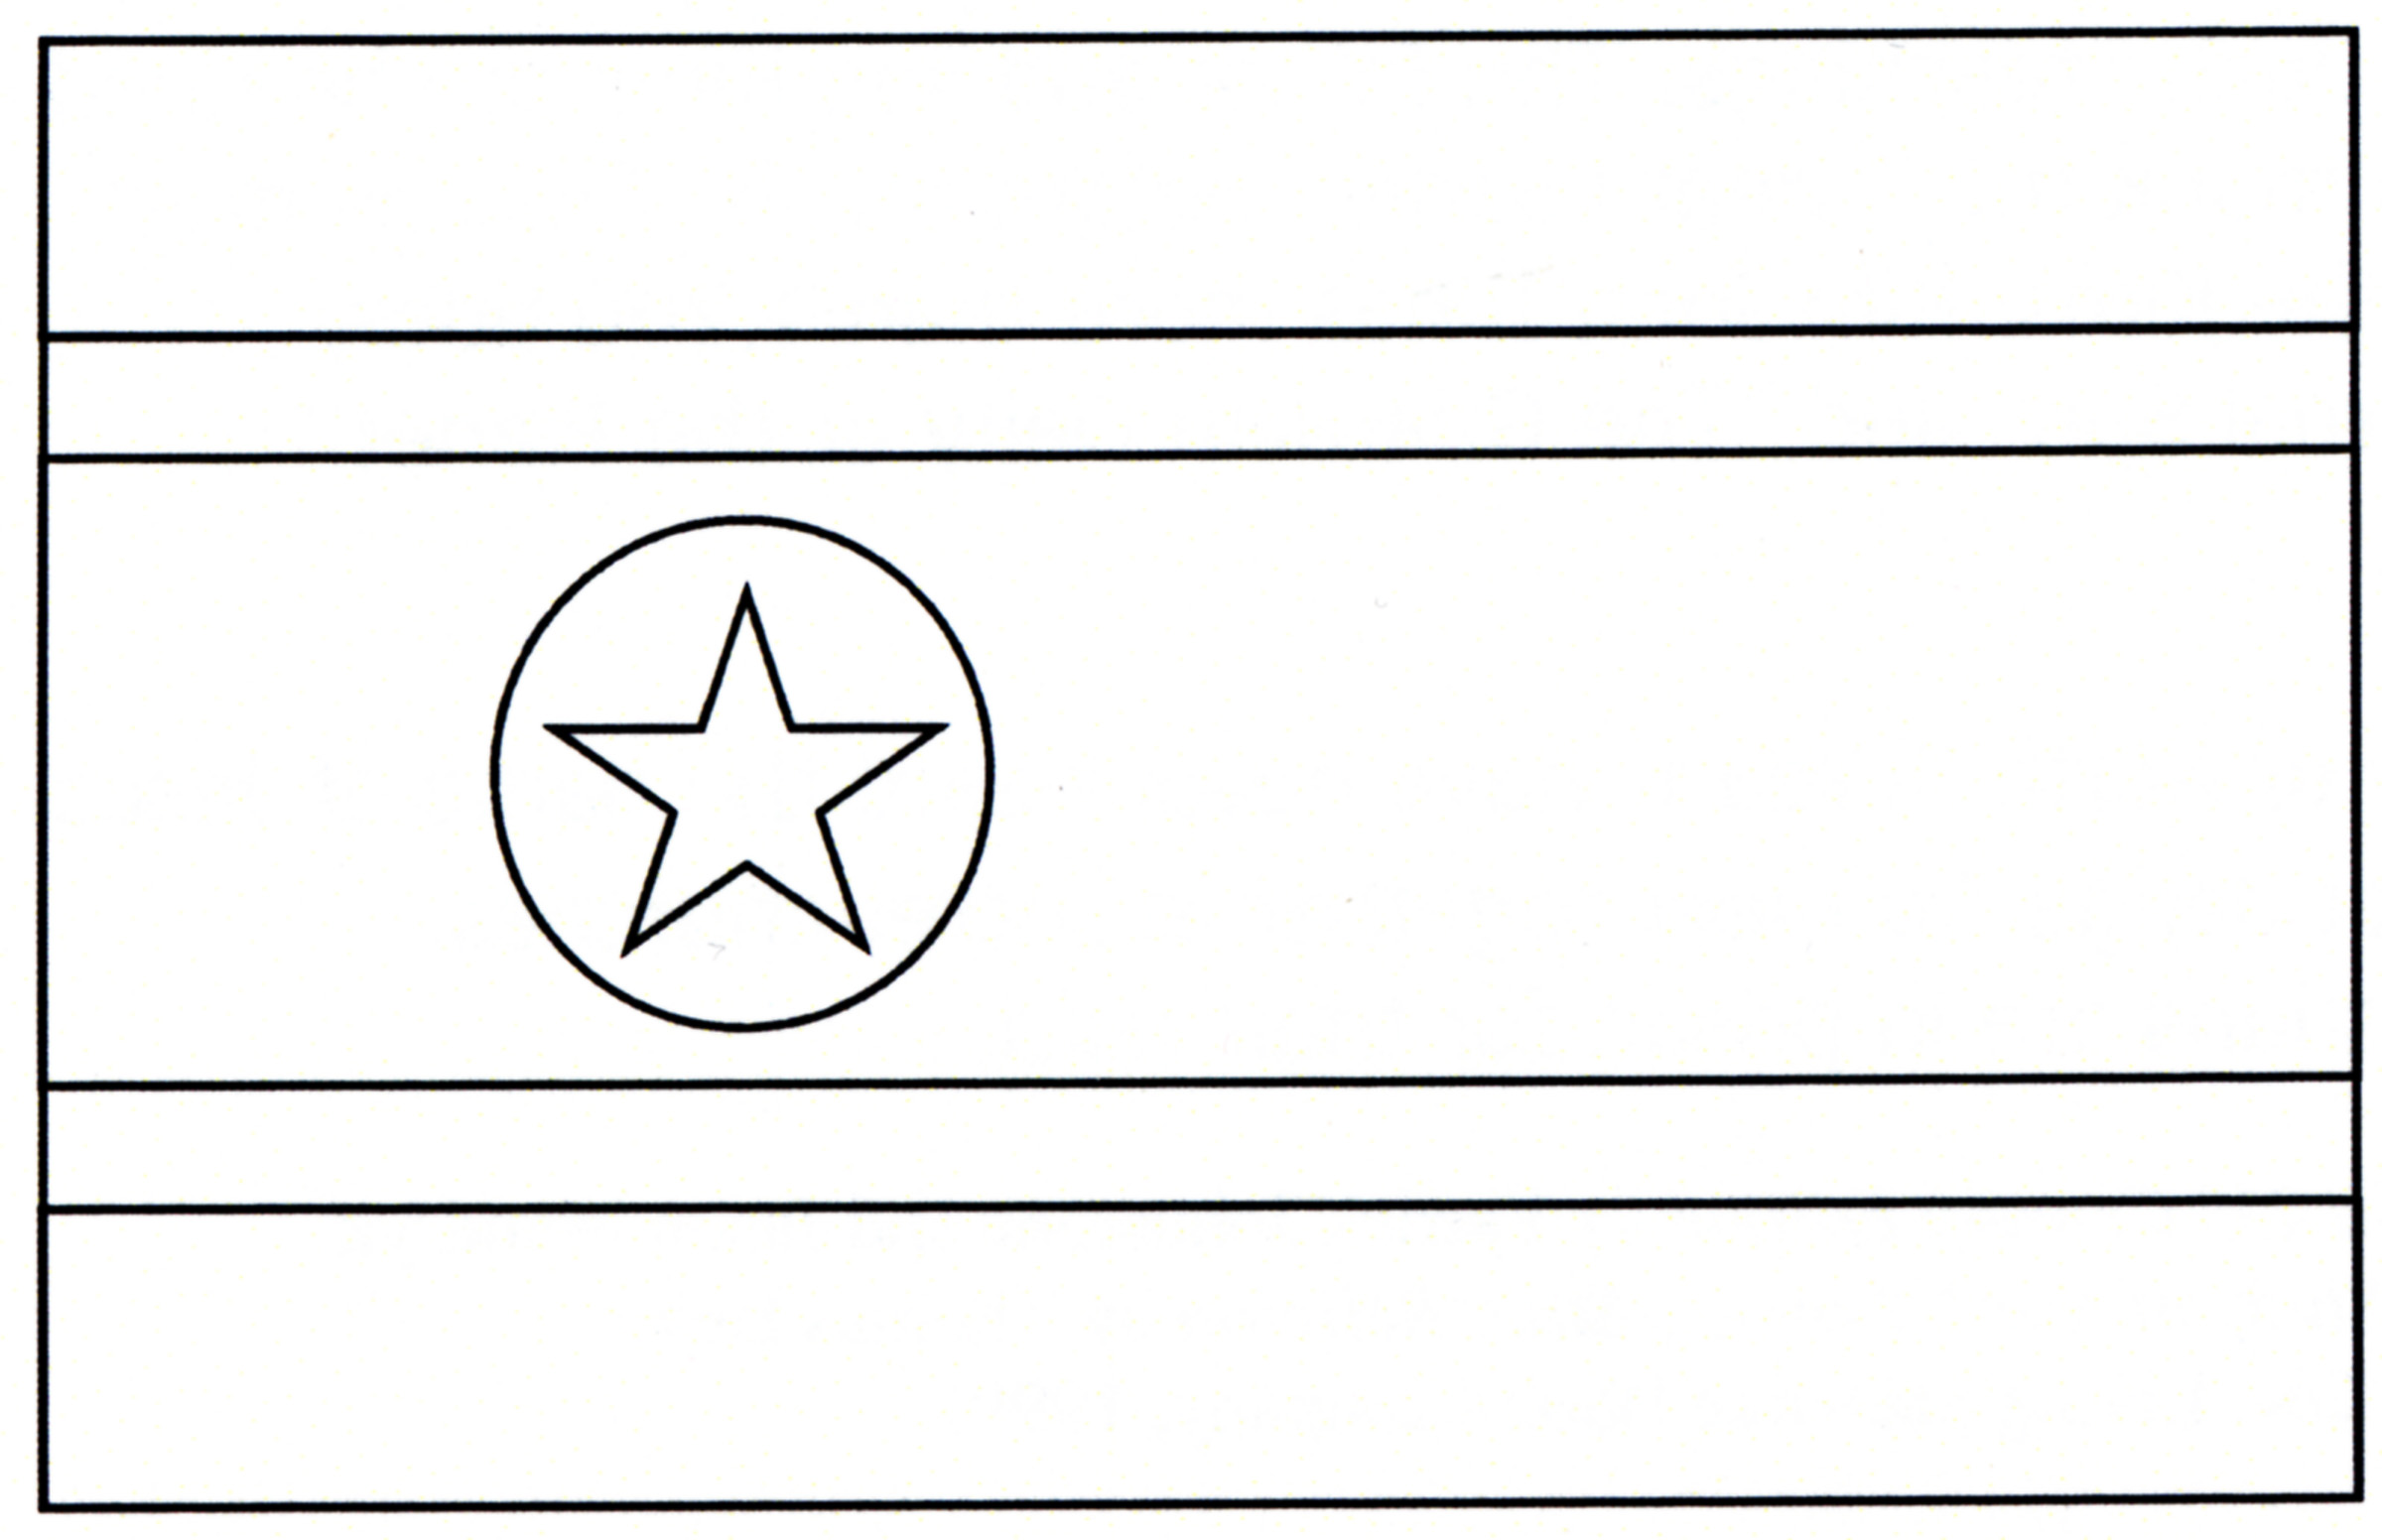 Flags Coloring Pages (14)